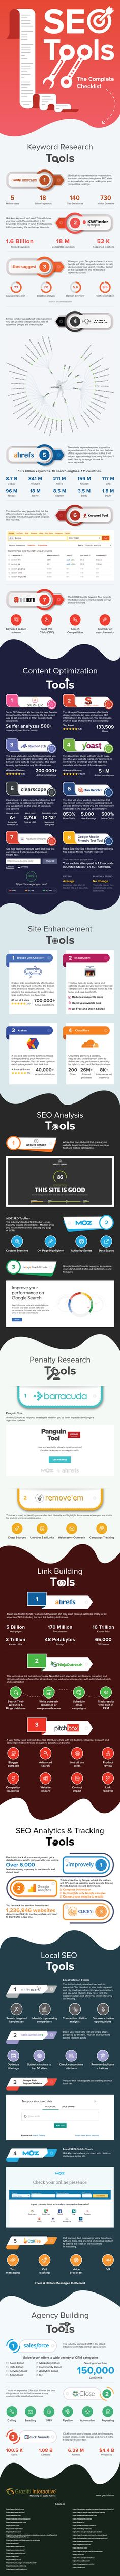 Choosing the Right SEO Tools for Your Business | Grazitti Interactive Best Seo Tools, Keyword Ranking, Seo Basics, Seo News, Seo Specialist, Seo Strategy, Business Website, Blogging For Beginners, Online Marketing